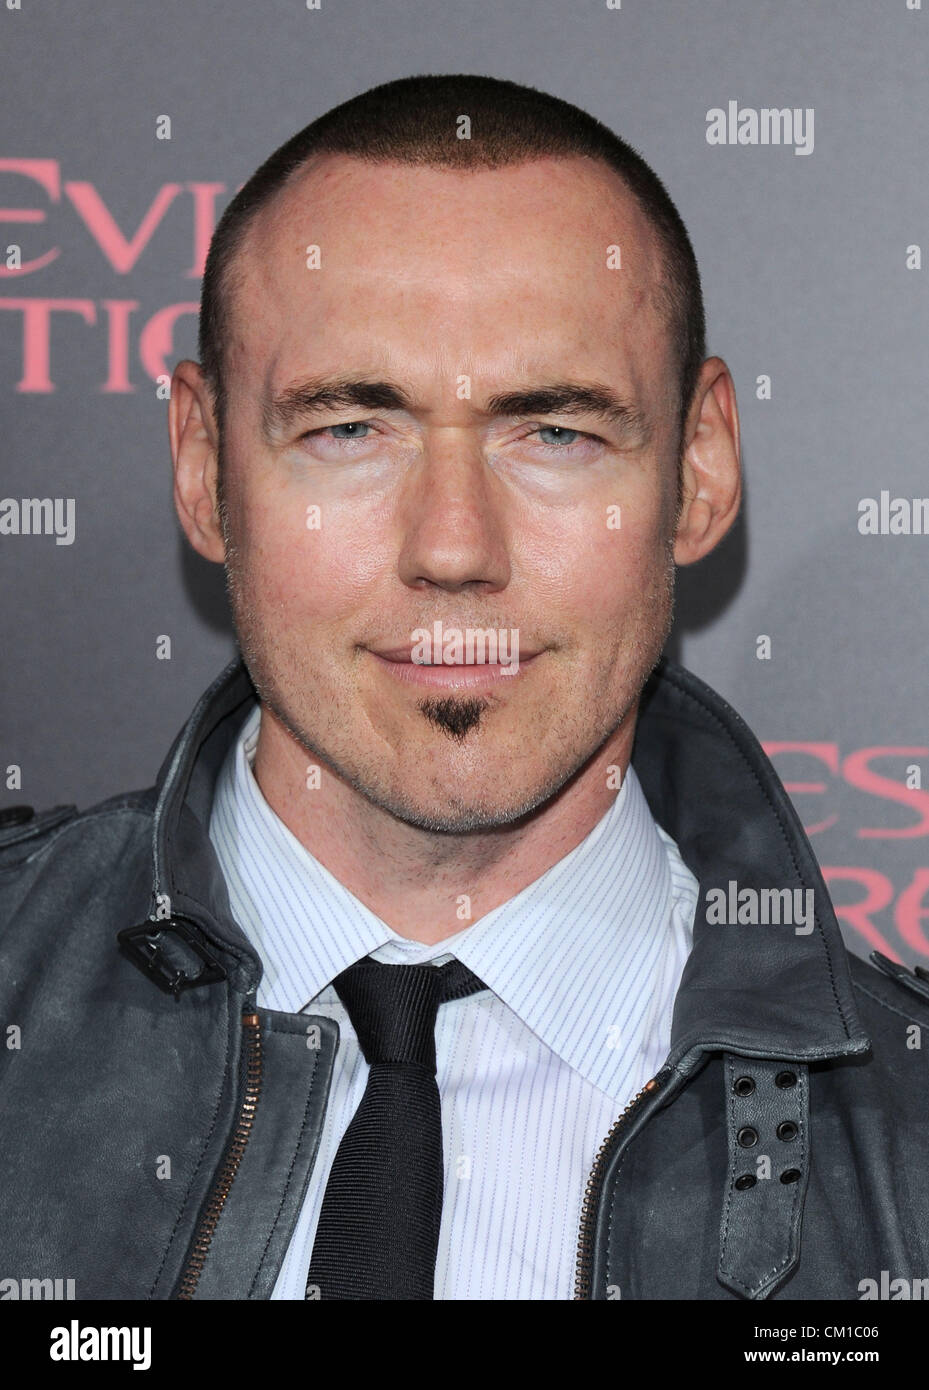 Los Angeles, CA, USA Sept 12th 2012. Kevin Durand  at the film premiere for Resident Evil - Retribution Photo © - Stock Image